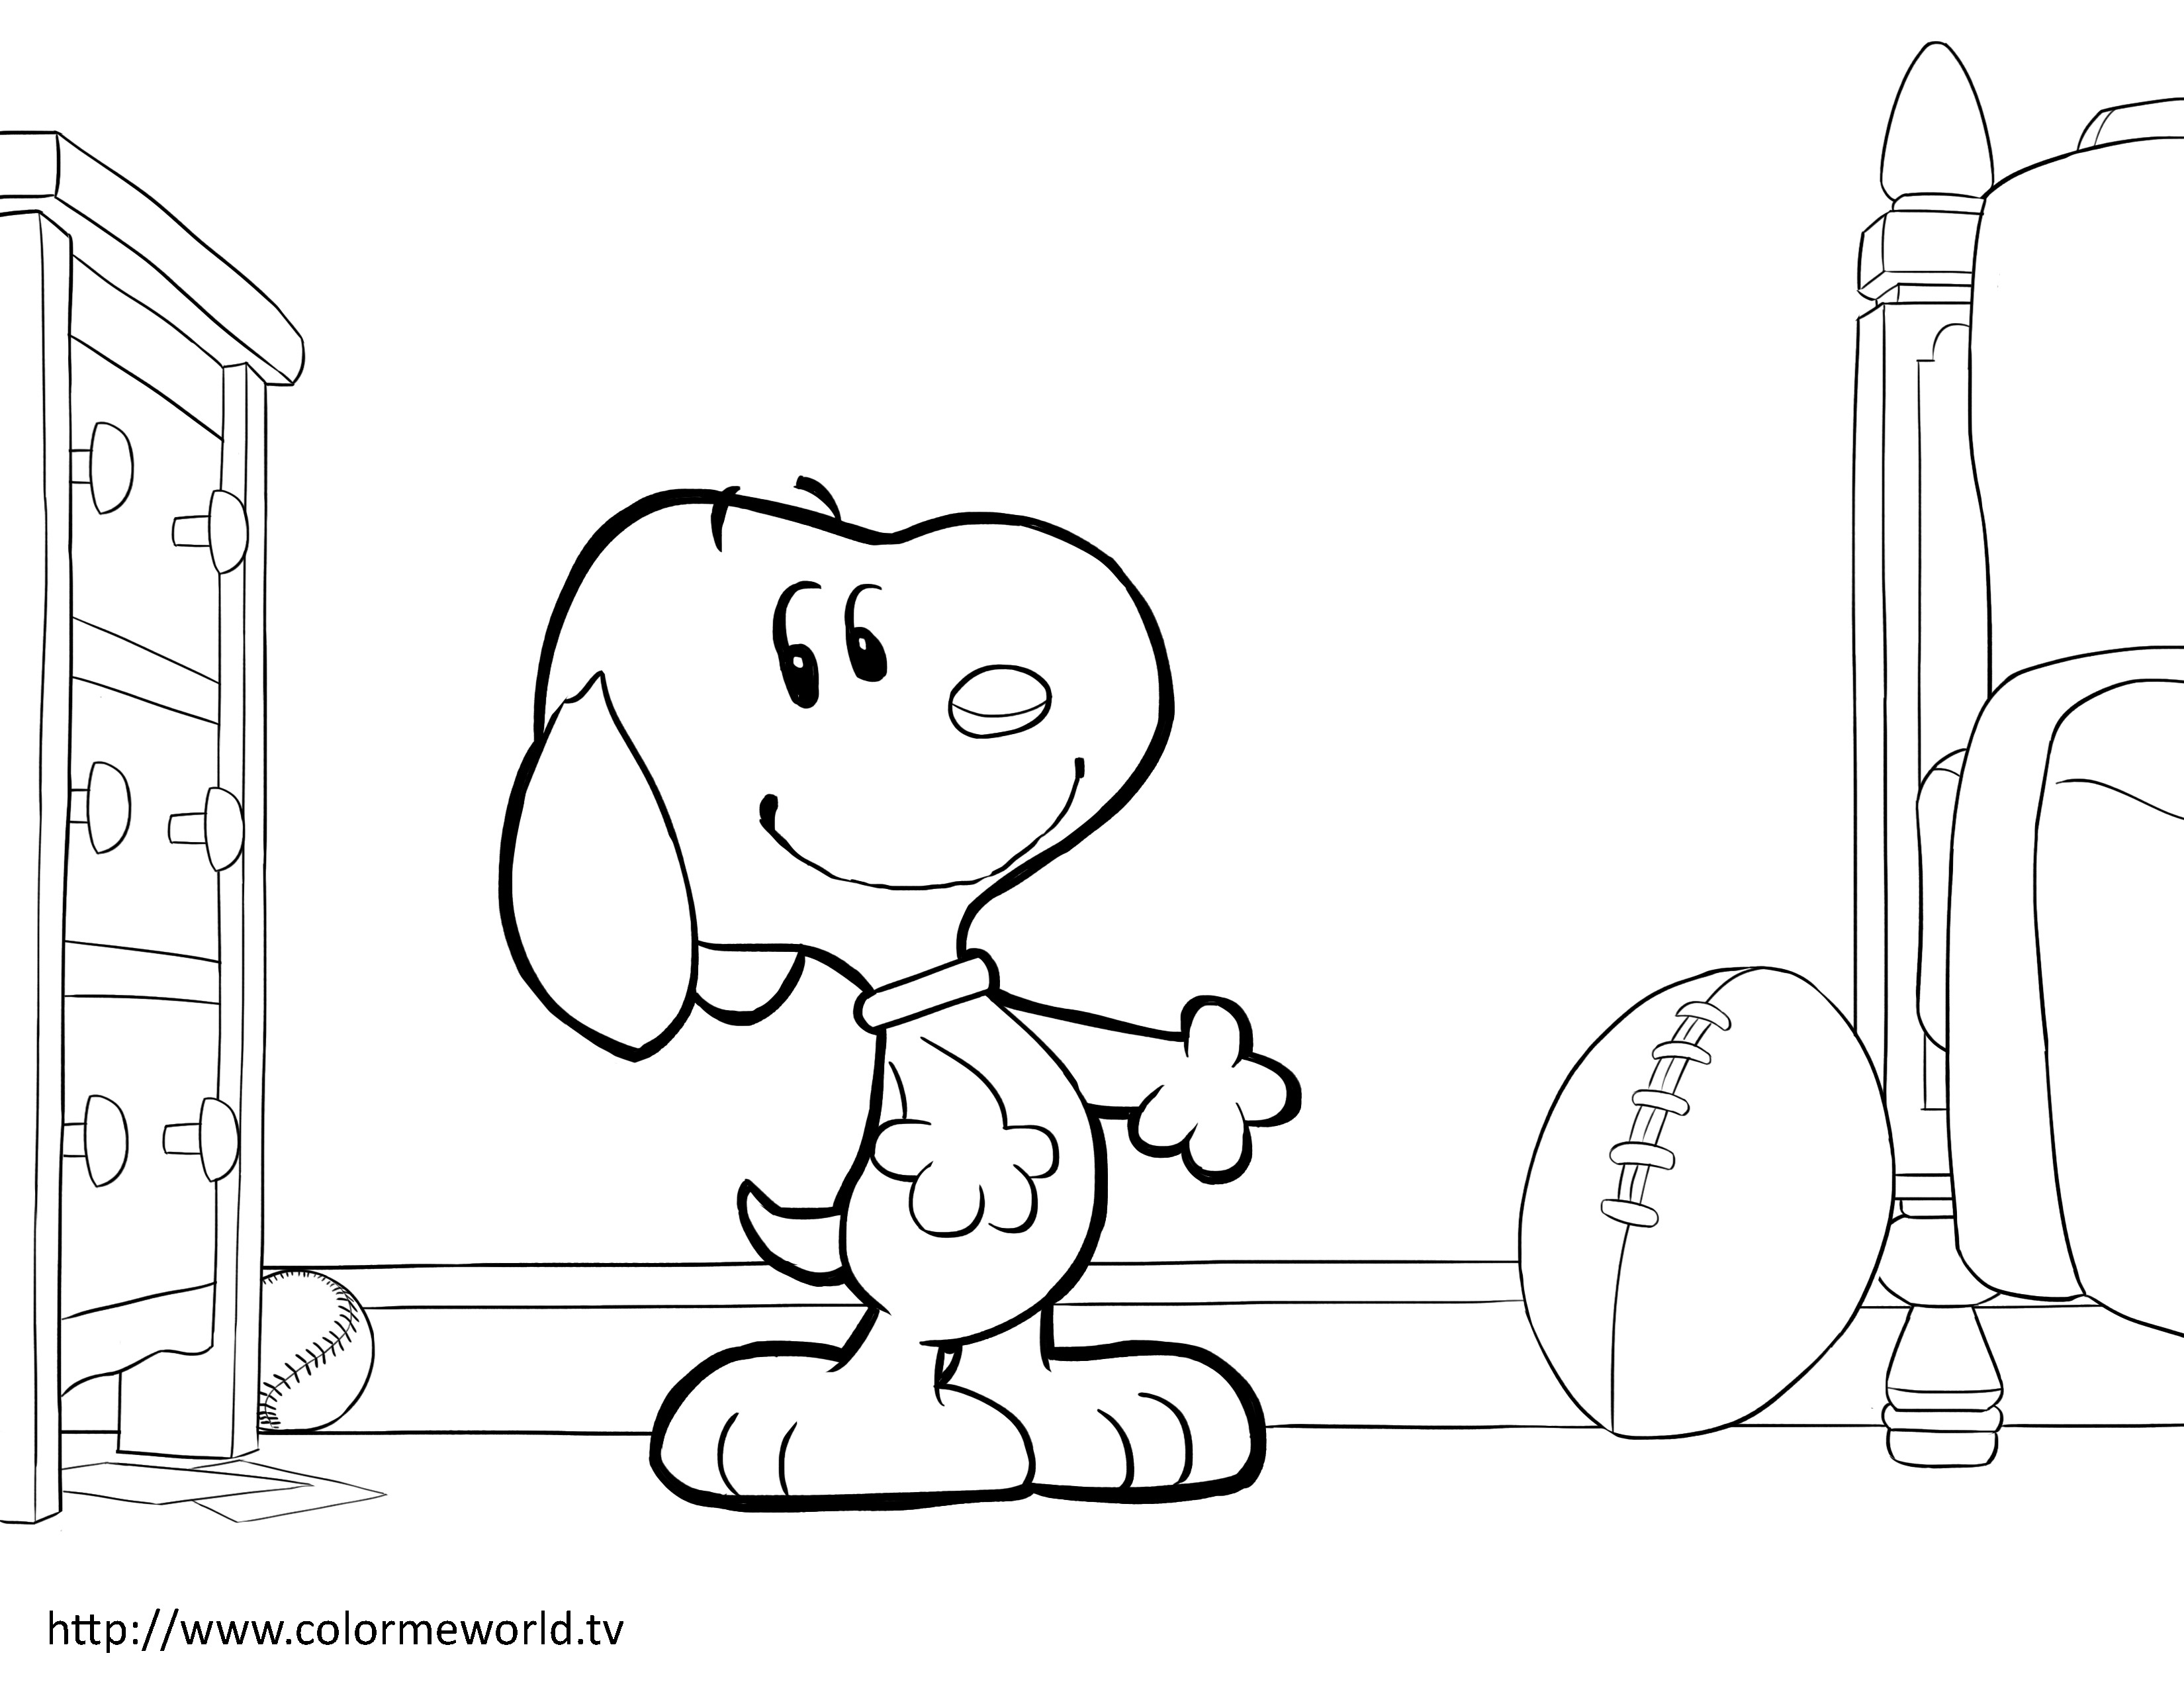 3300x2550 Peanuts Movie Cartoon Coloring Pages Download Coloring Sheets